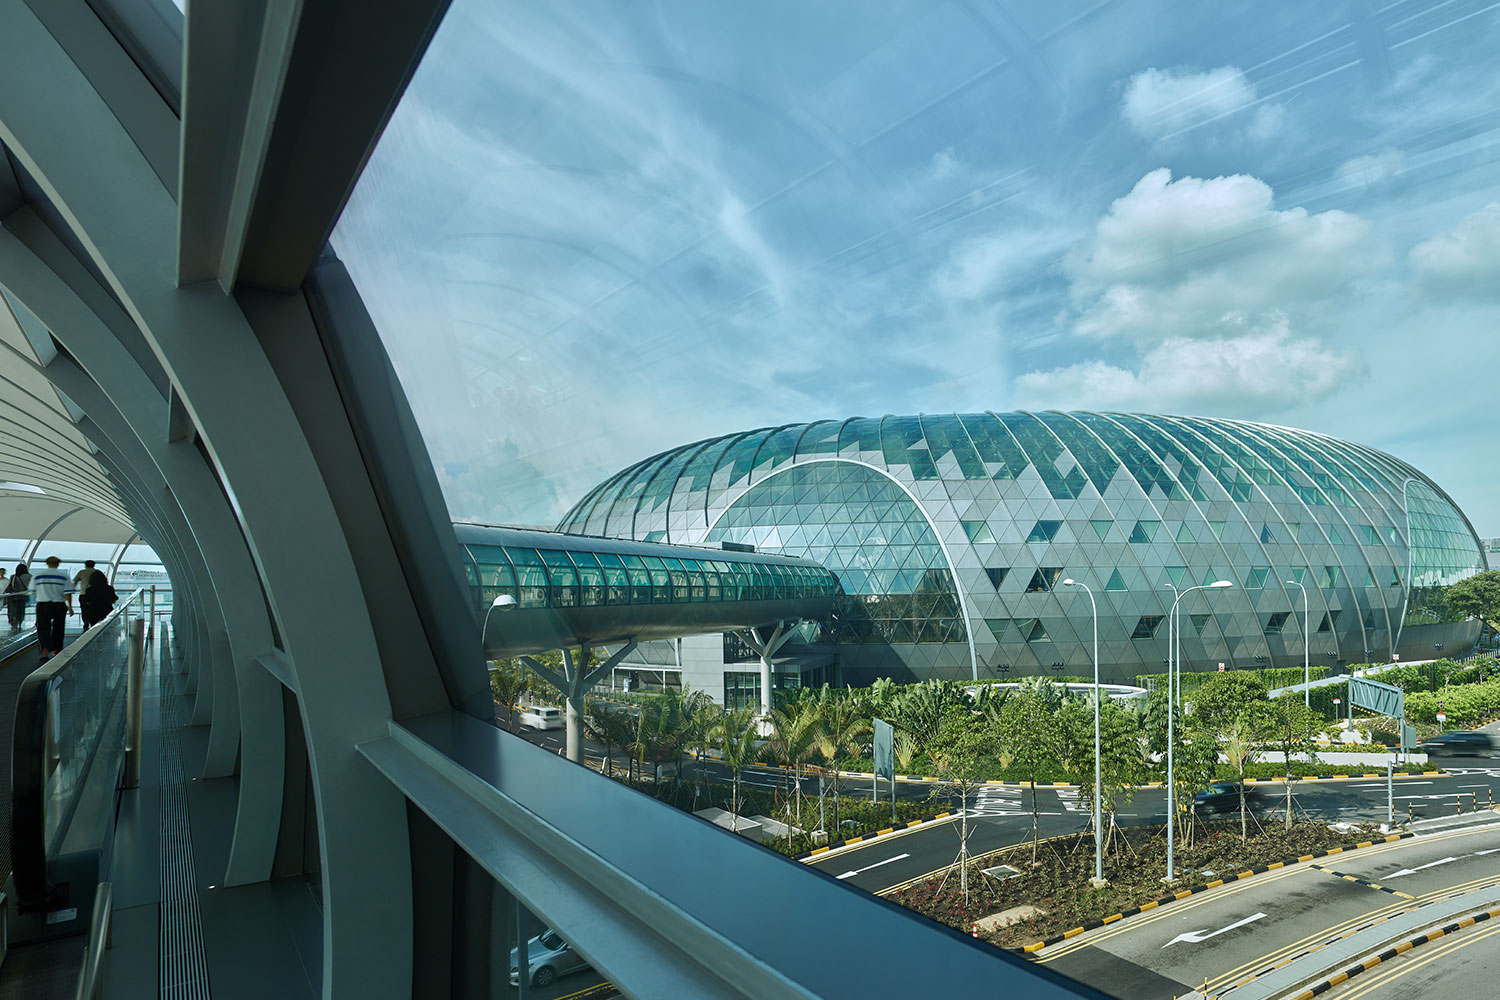 External view of the unique Jewel Changi Airport